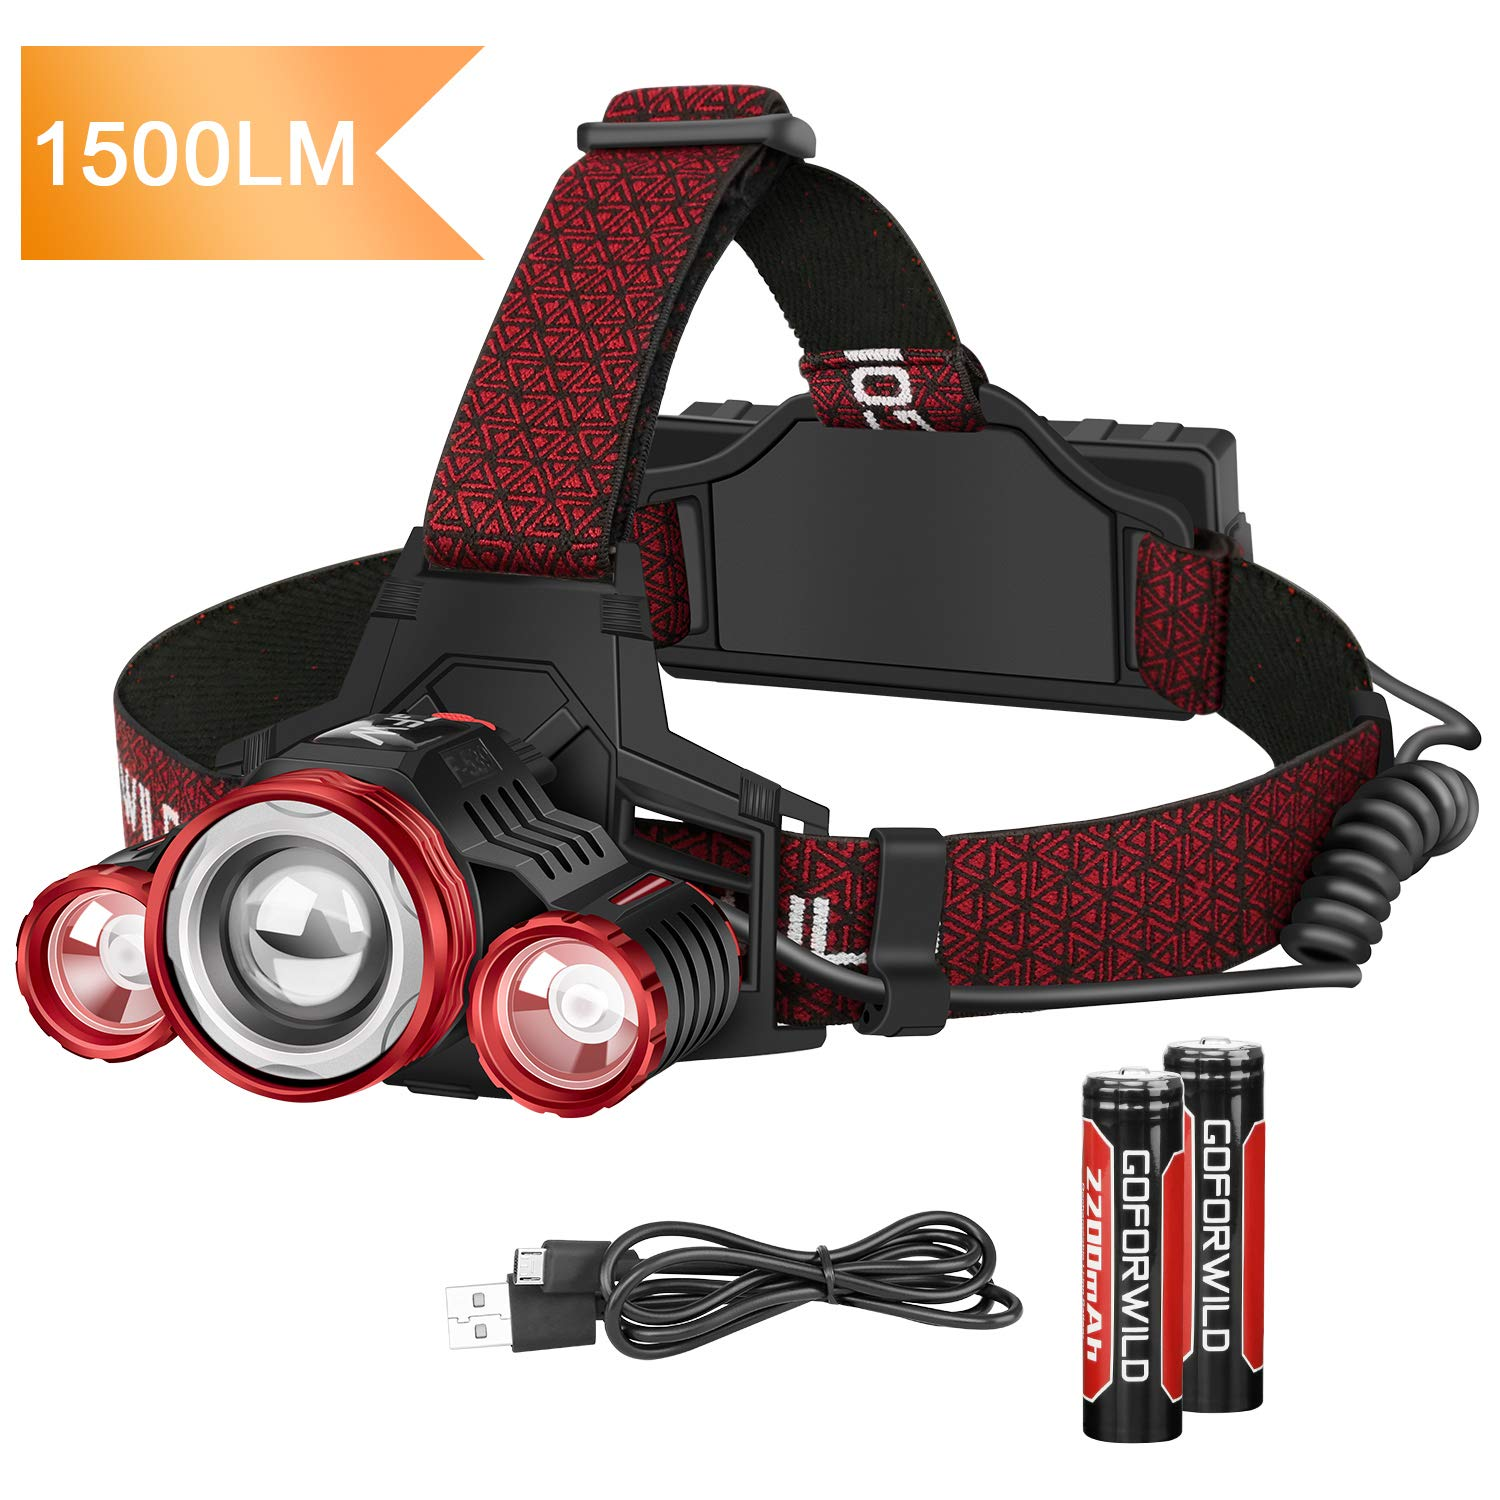 Headlamp,GOFORWILD 1500 Lumen Brightest Rechargeable LED Headlamp, With Battery Level Indicator,4 Light Modes zoomable work light,Waterproof Head Lights for Camping,Hiking, Outdoor by GOFORWILD